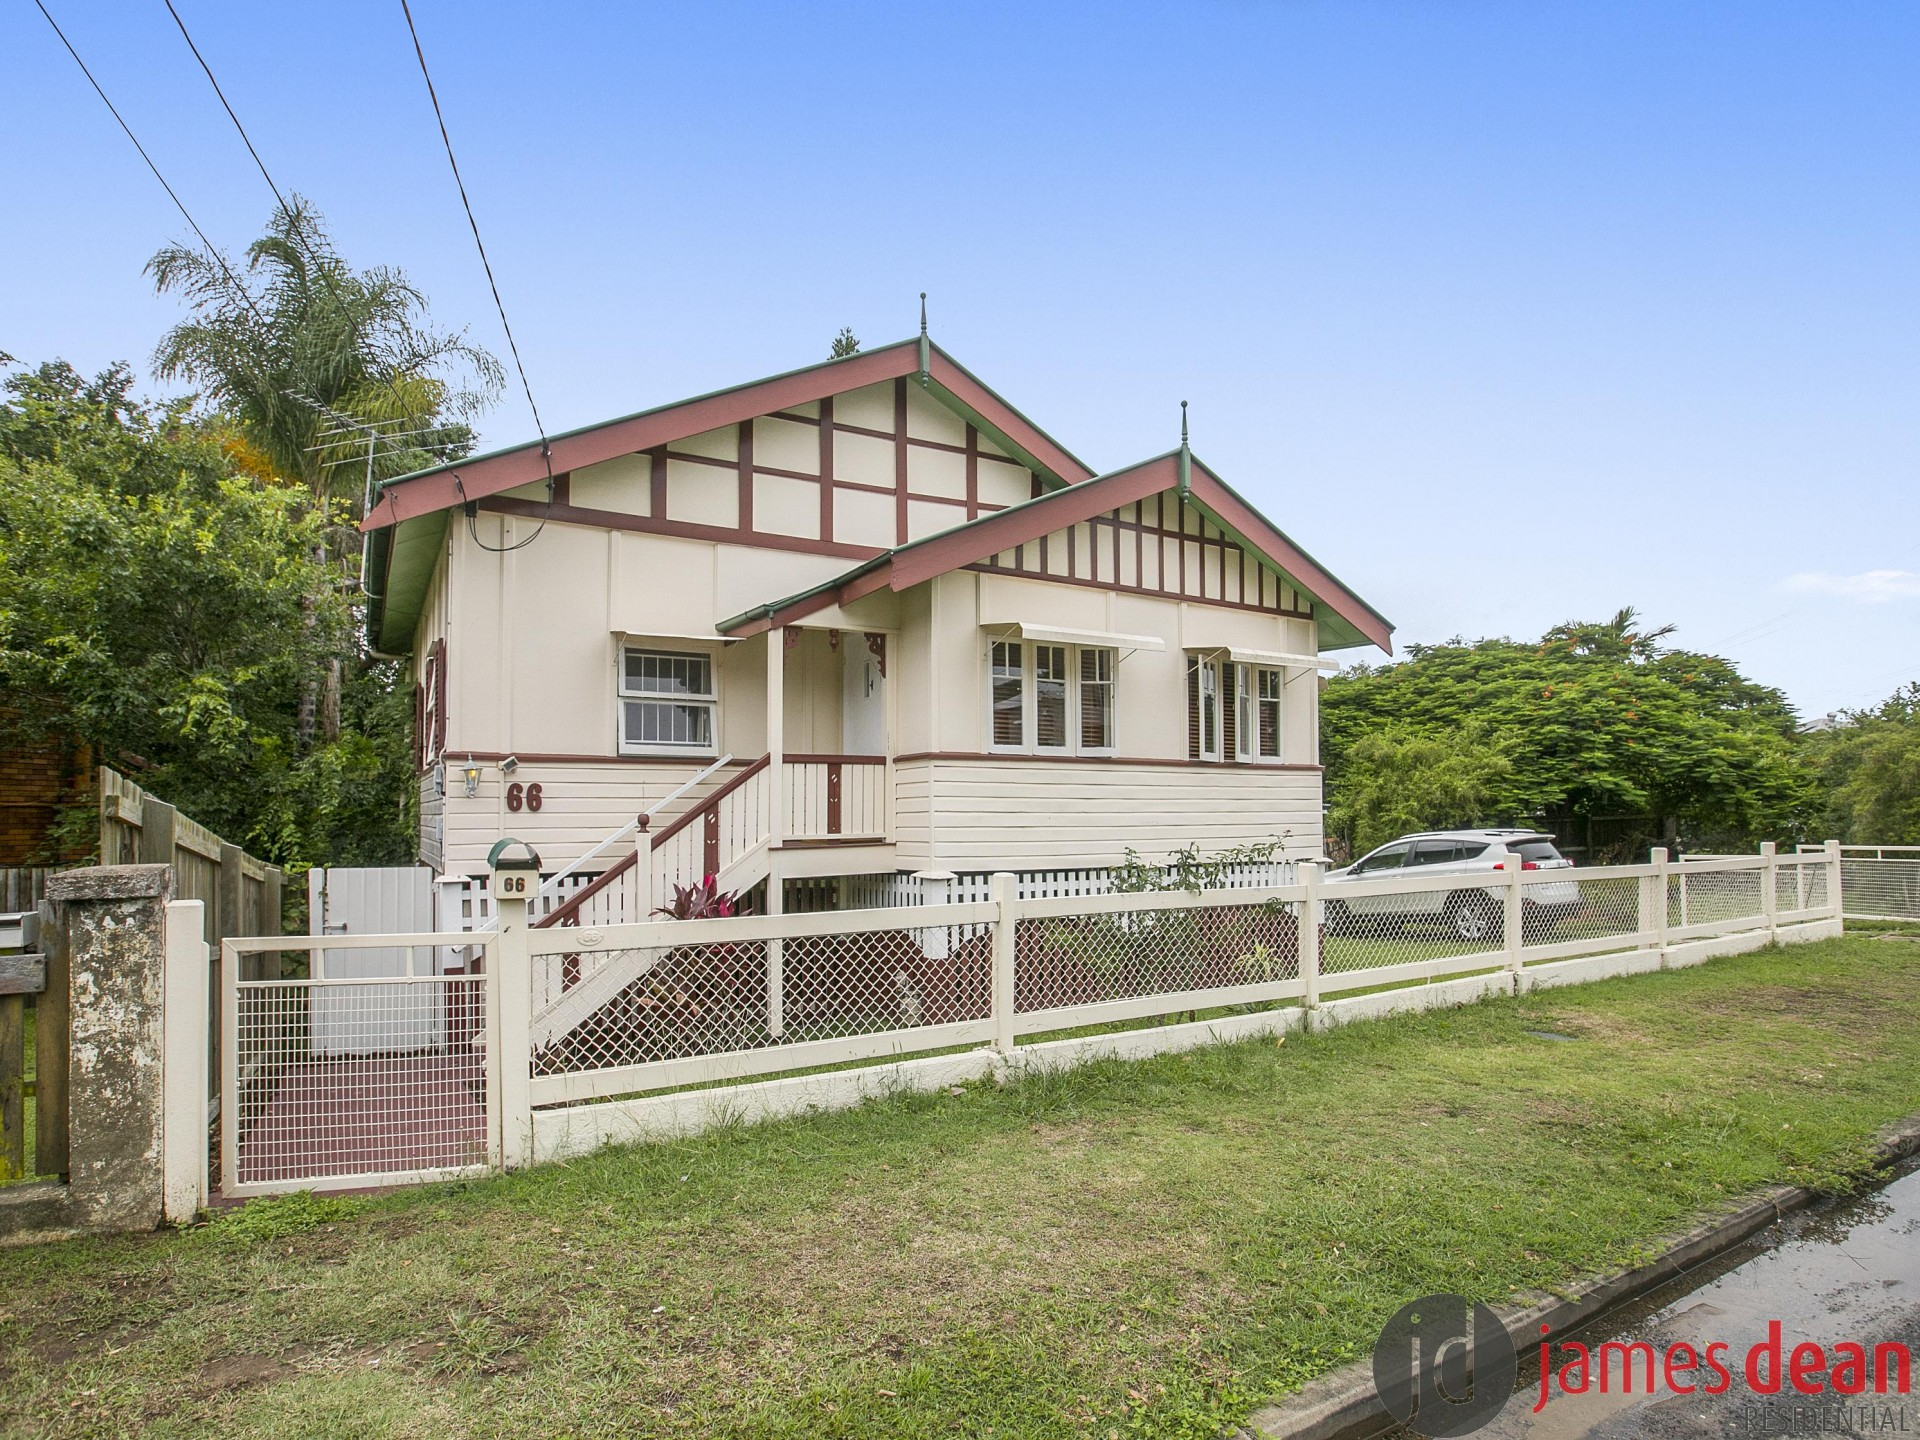 Quaint Queenslander in an Ultra Convenient Location